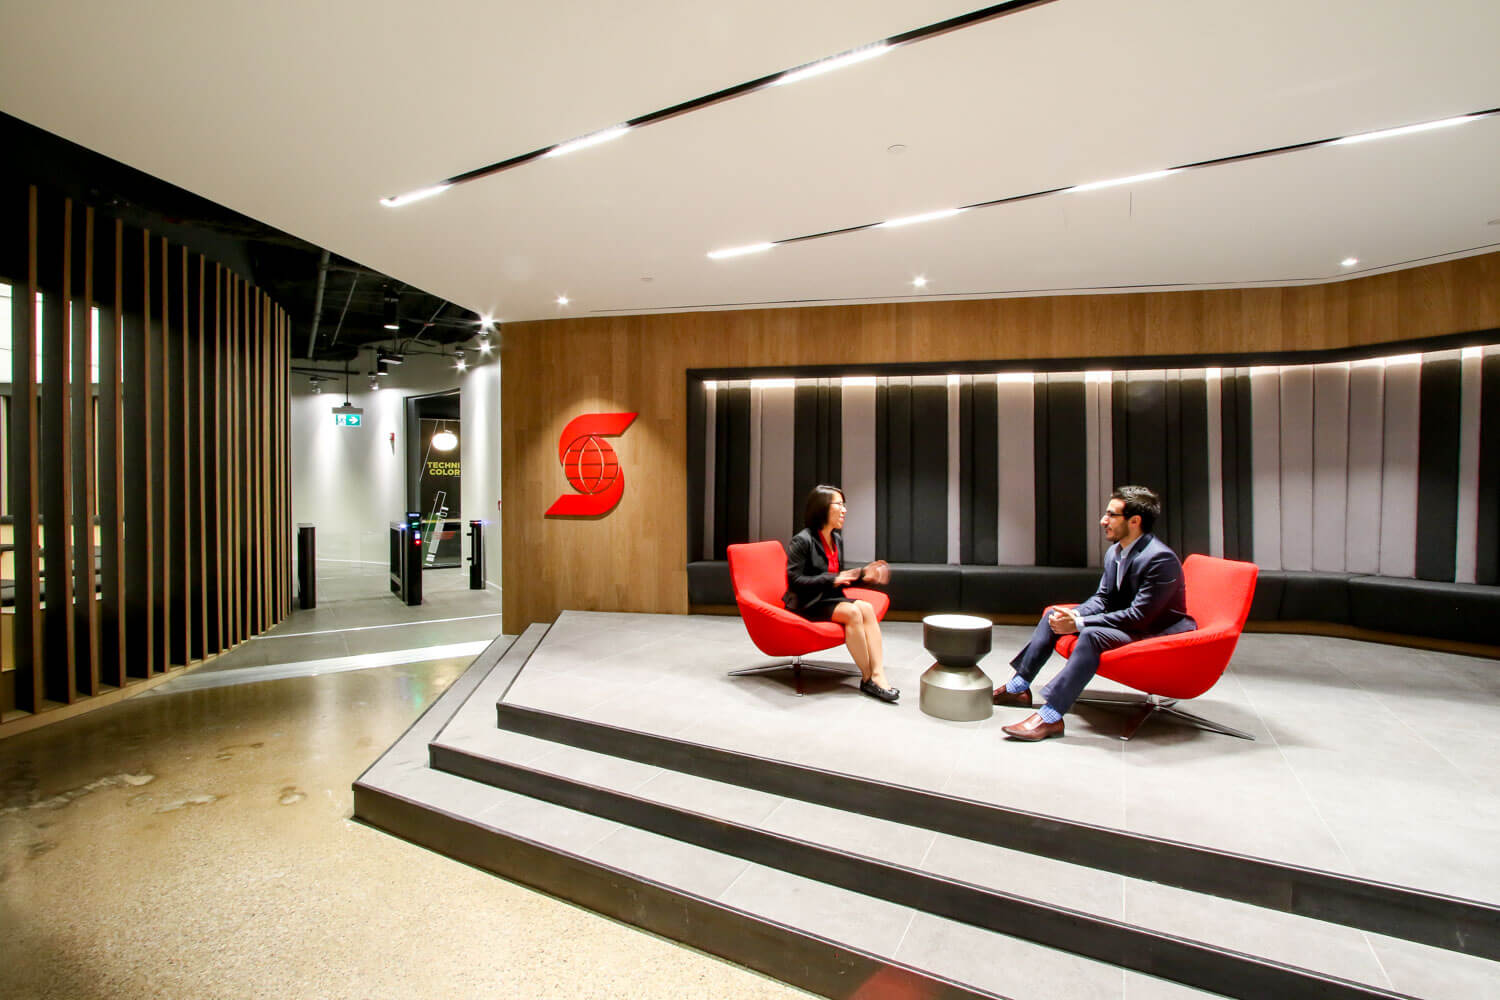 Scotiabank Toronto Disrupts The Future with Digital